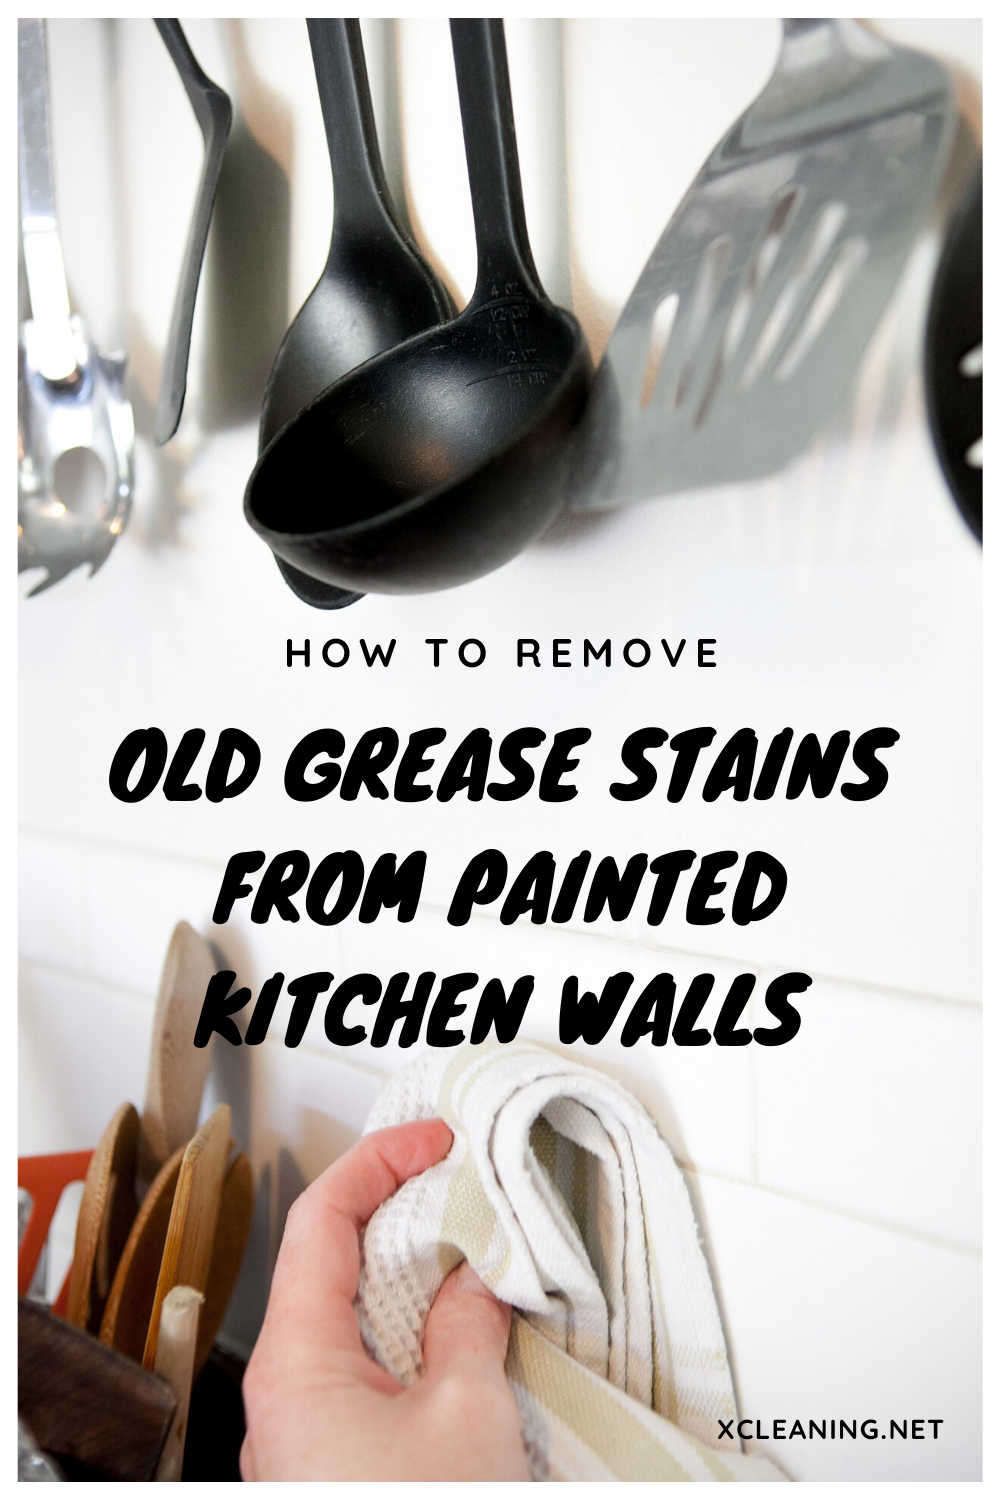 How To Remove Old Grease Stains From Painted Kitchen Walls Xcleaning Net Your Cleaning Tips